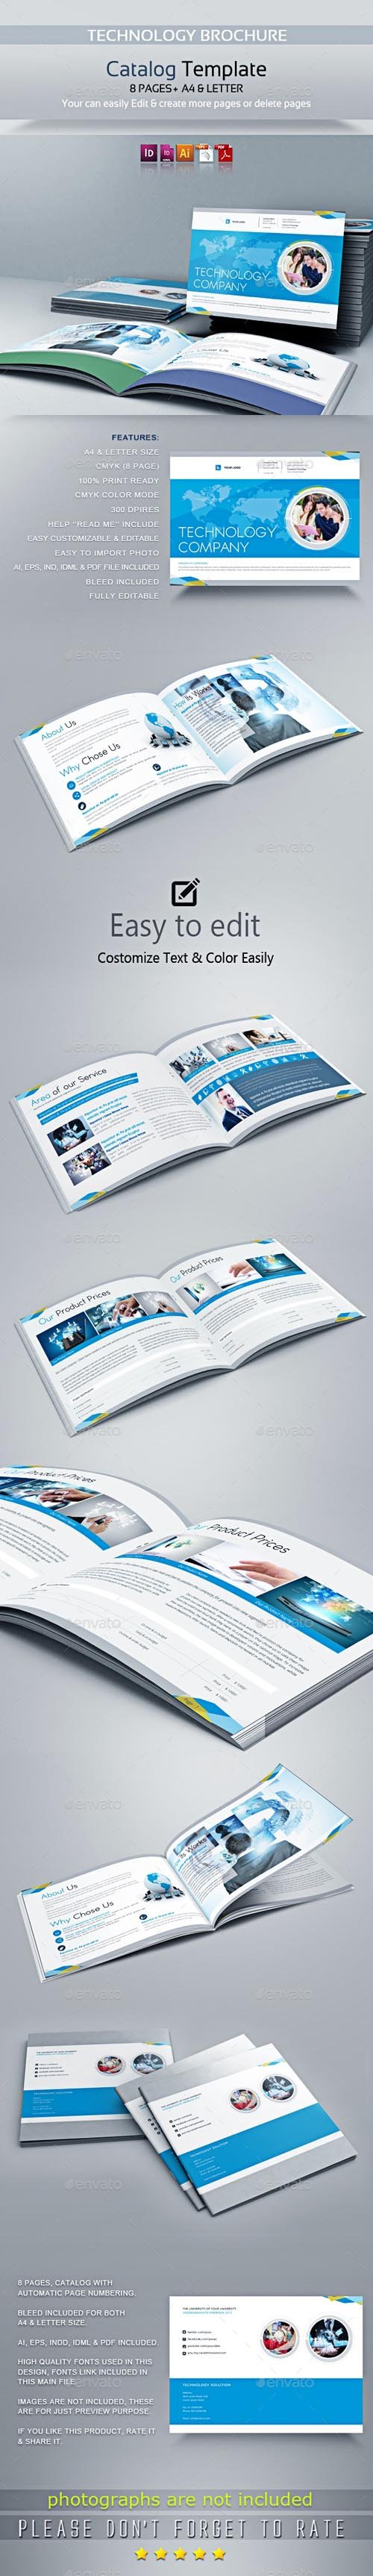 Graphicriver - Technology Brochure Catalog 20214890